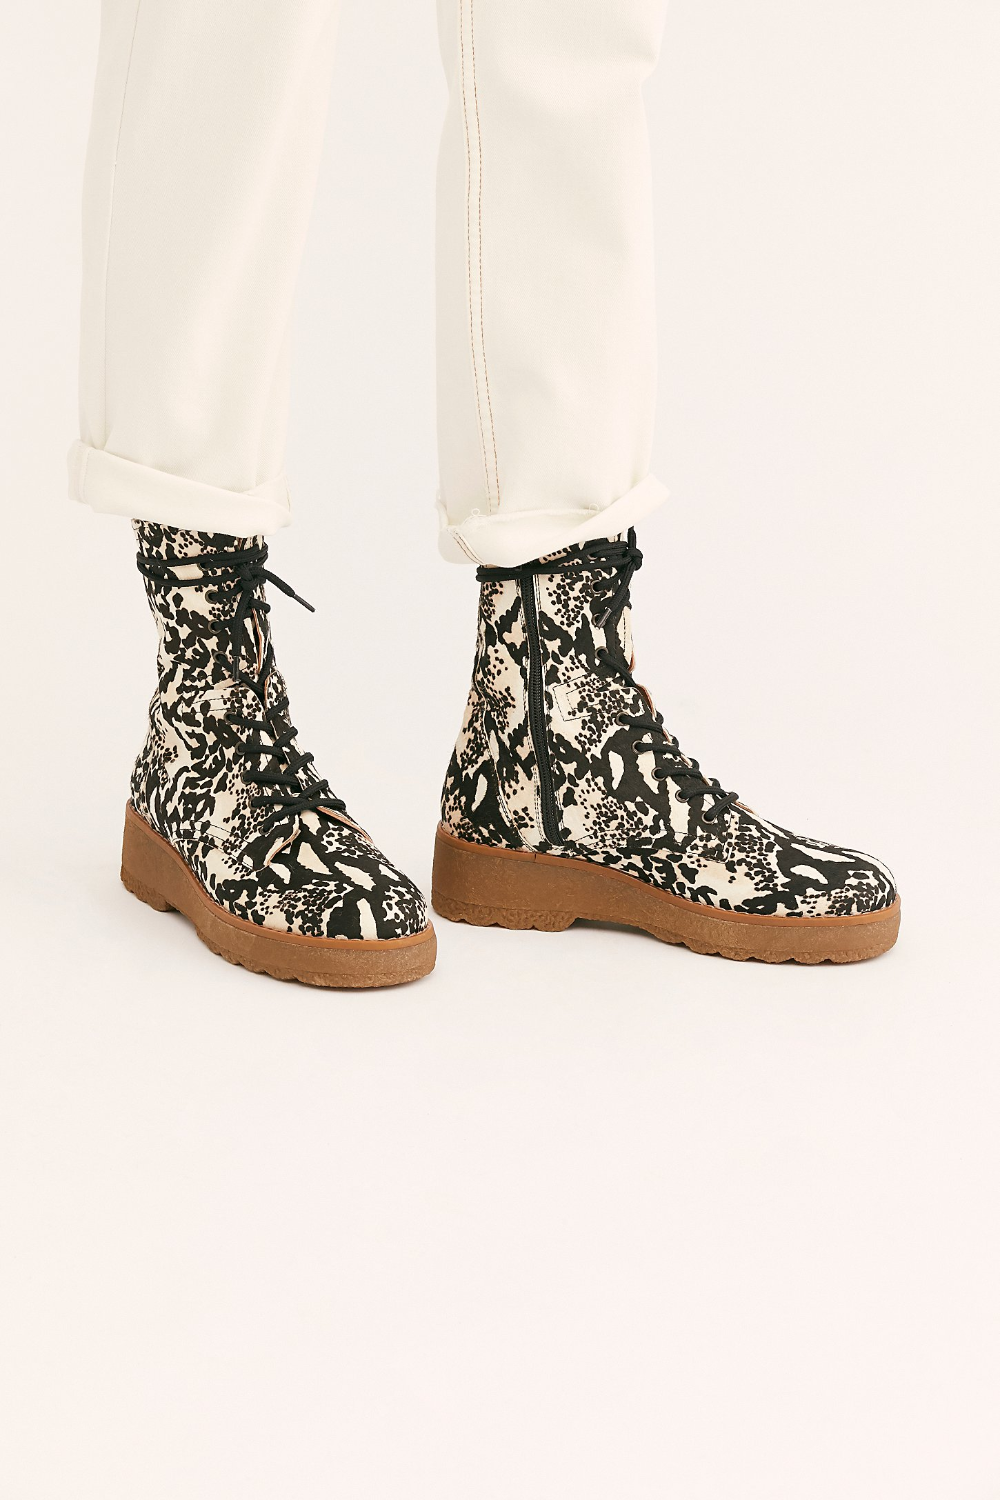 taos lace up boots